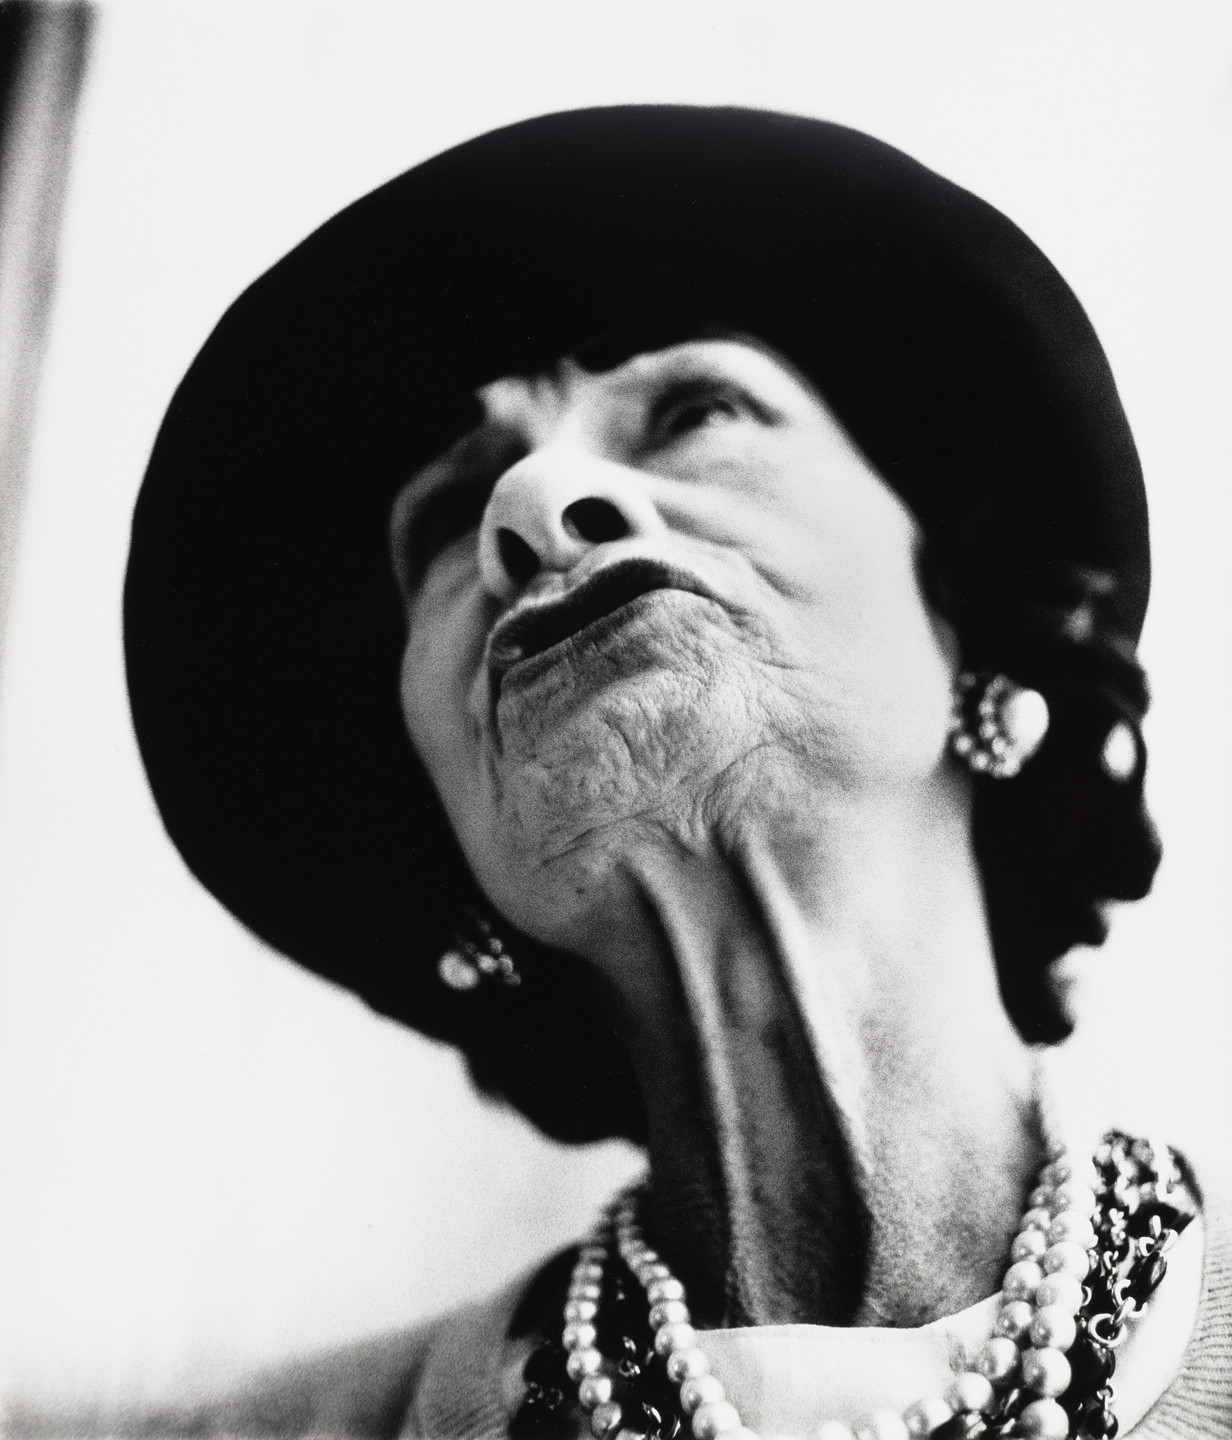 Richard Avedon. Gabrielle Chanel, couturière, Paris. March 6, 1958